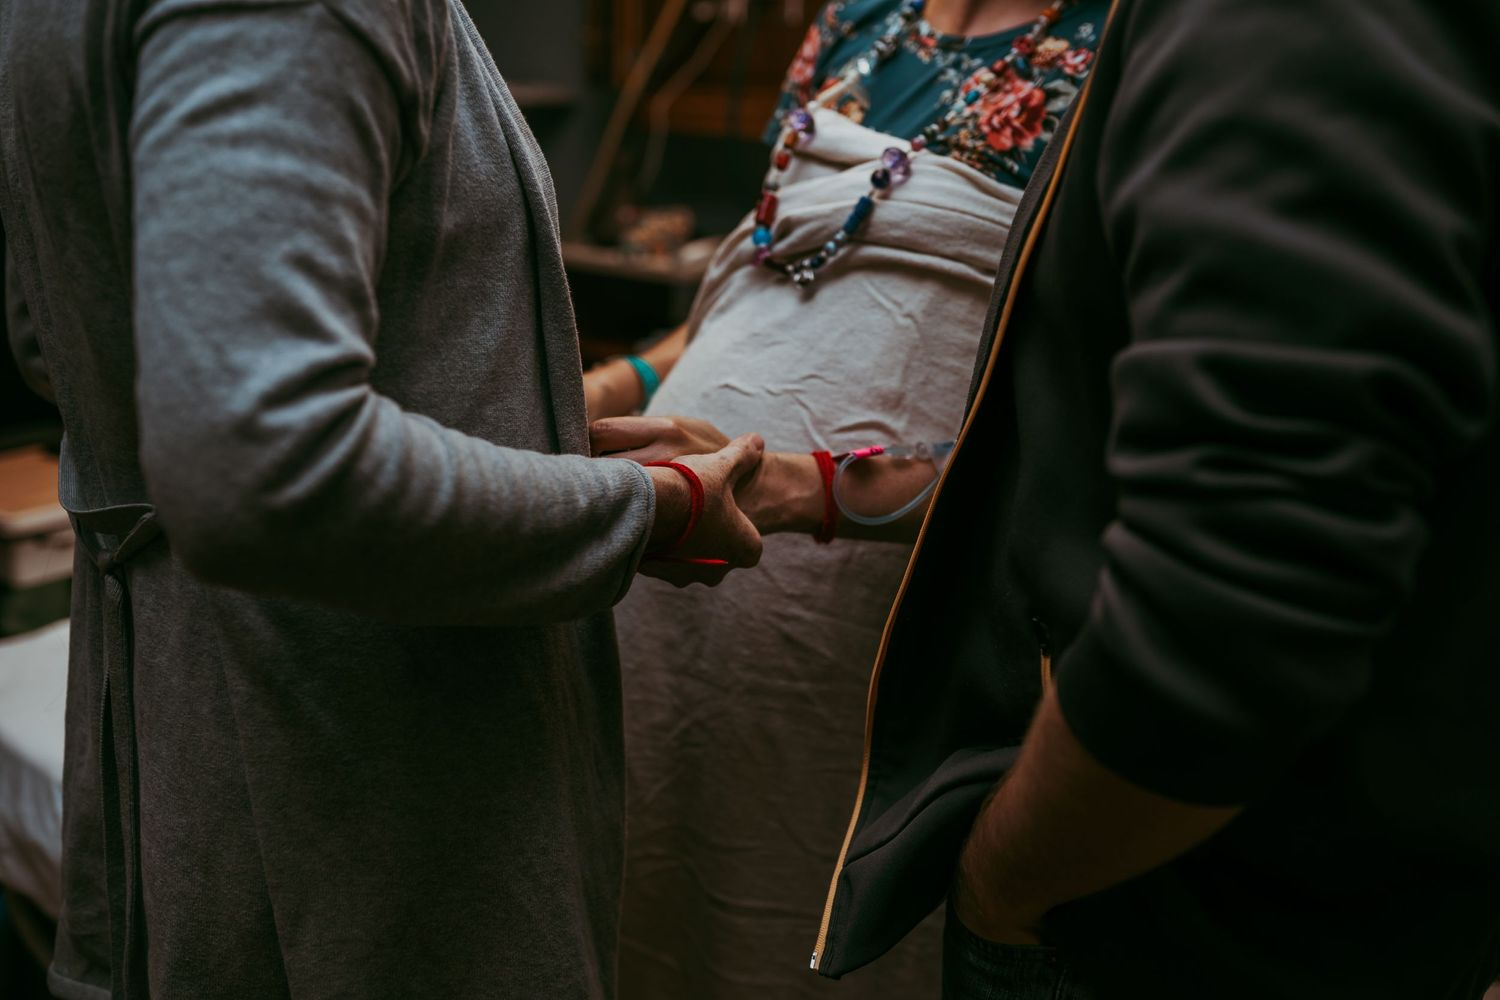 A pregnant woman holding hands with her doula showing both of their prayer bracelets.